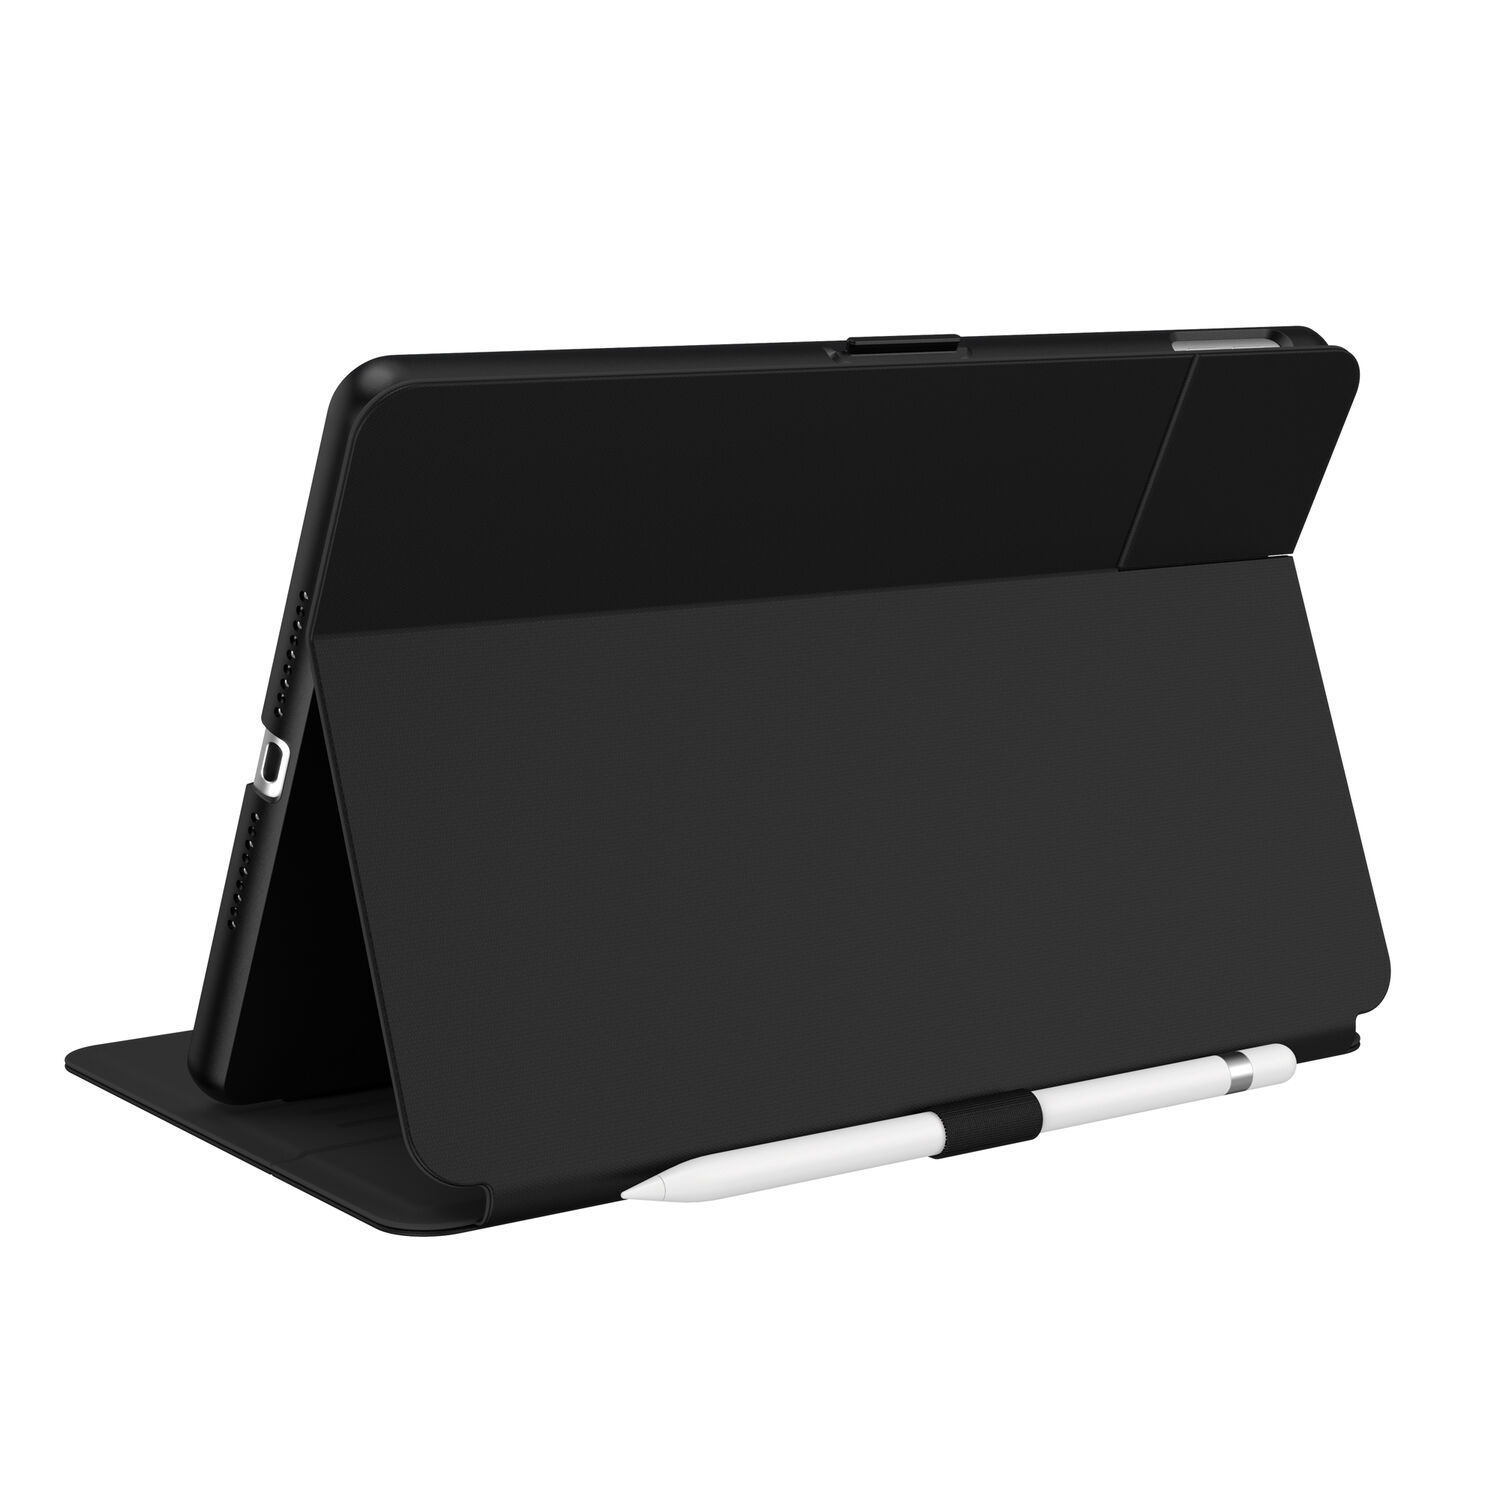 Speck Balance Carrying Case (Folio) for 10.2in iPad 7th/8th/9th Gen. - Black /Black at Small Dog Electronics